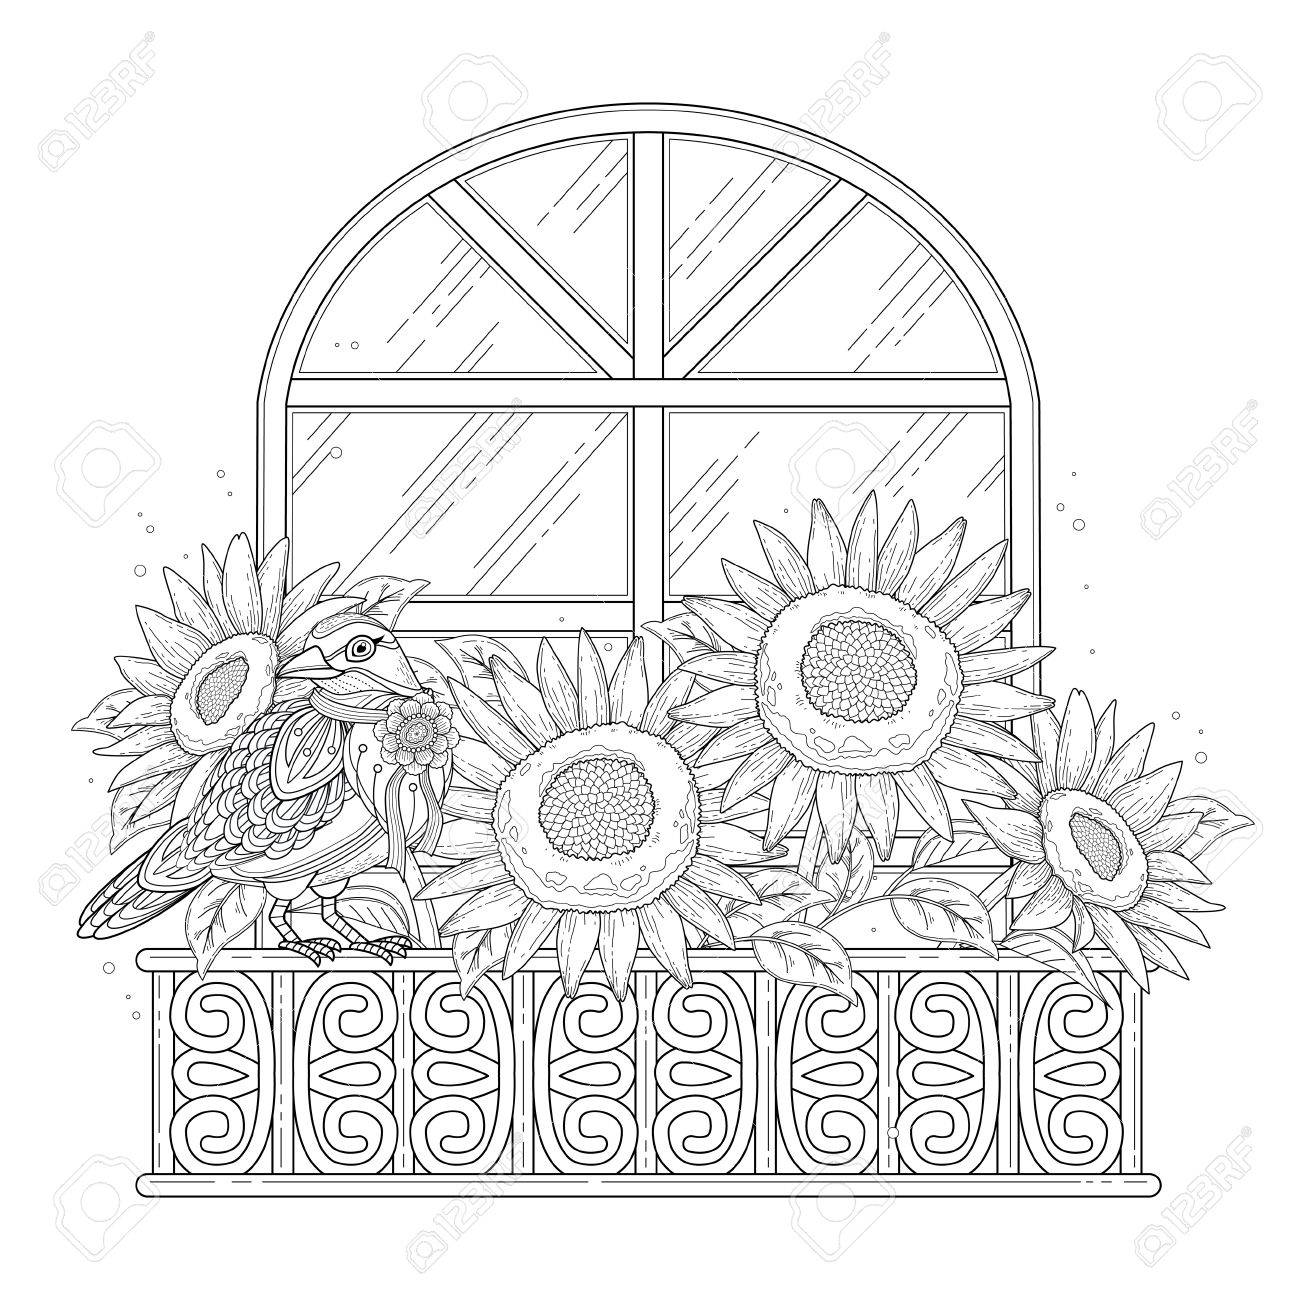 beautiful sunflowers coloring page with floral elements in exquisite..